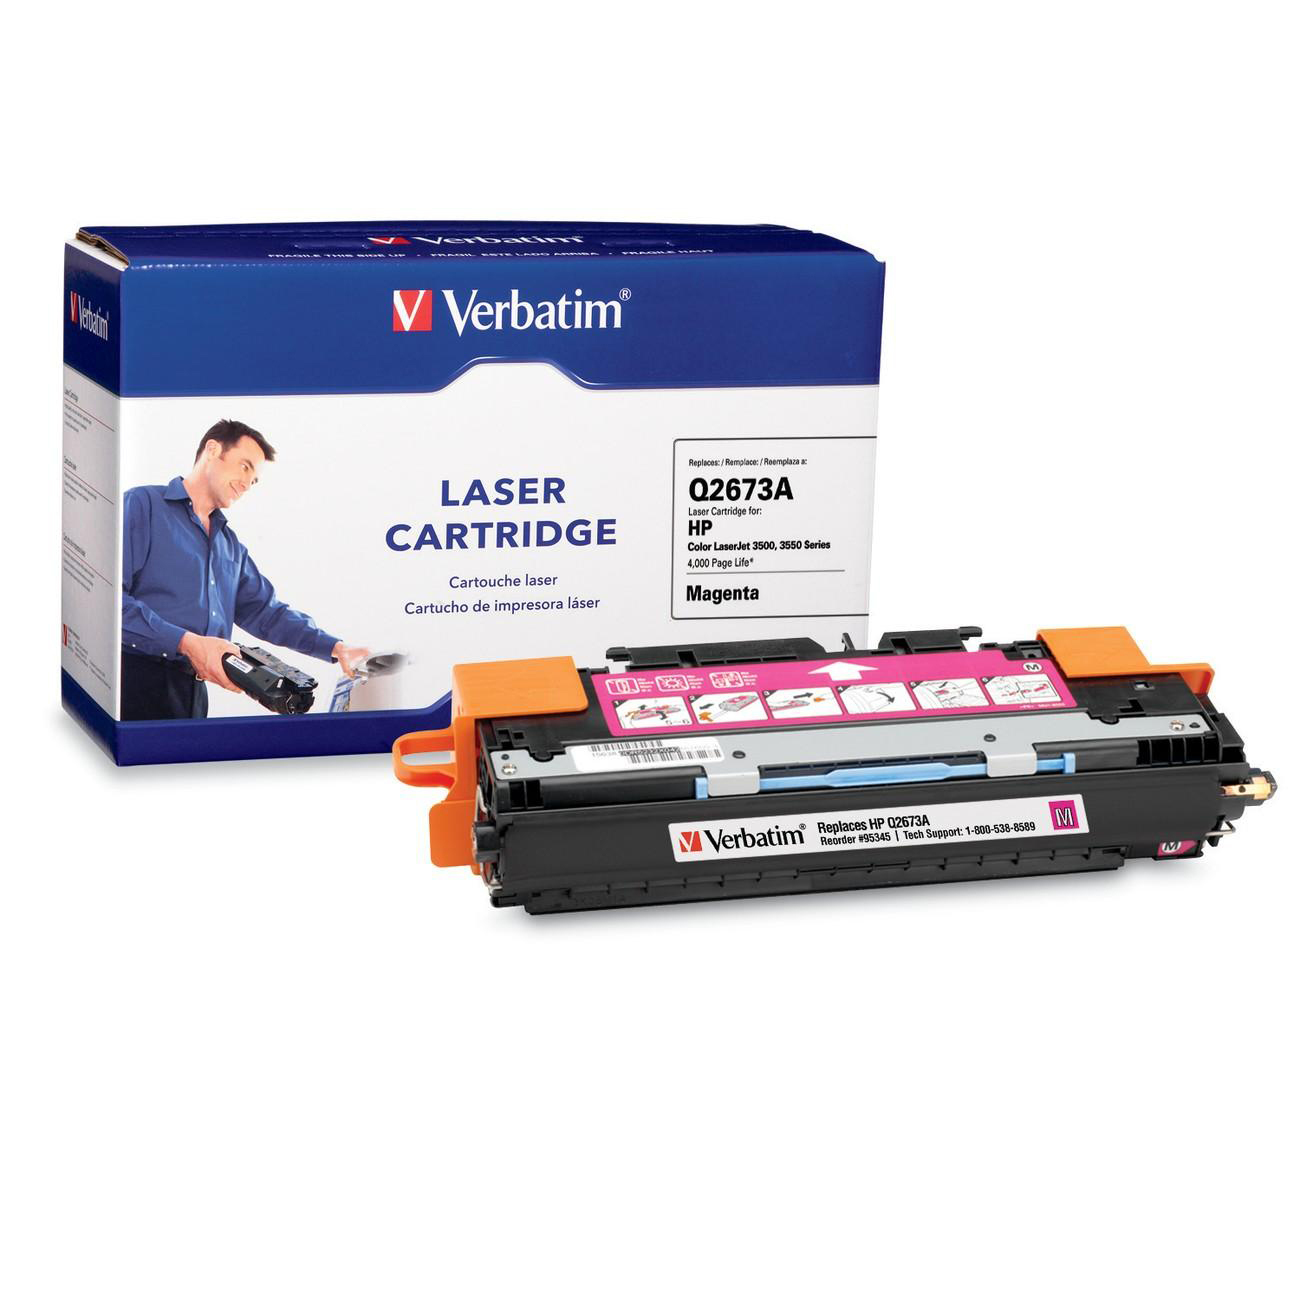 Verbatim Magenta Toner Cartridge Replacement For HP Q2673A 95345